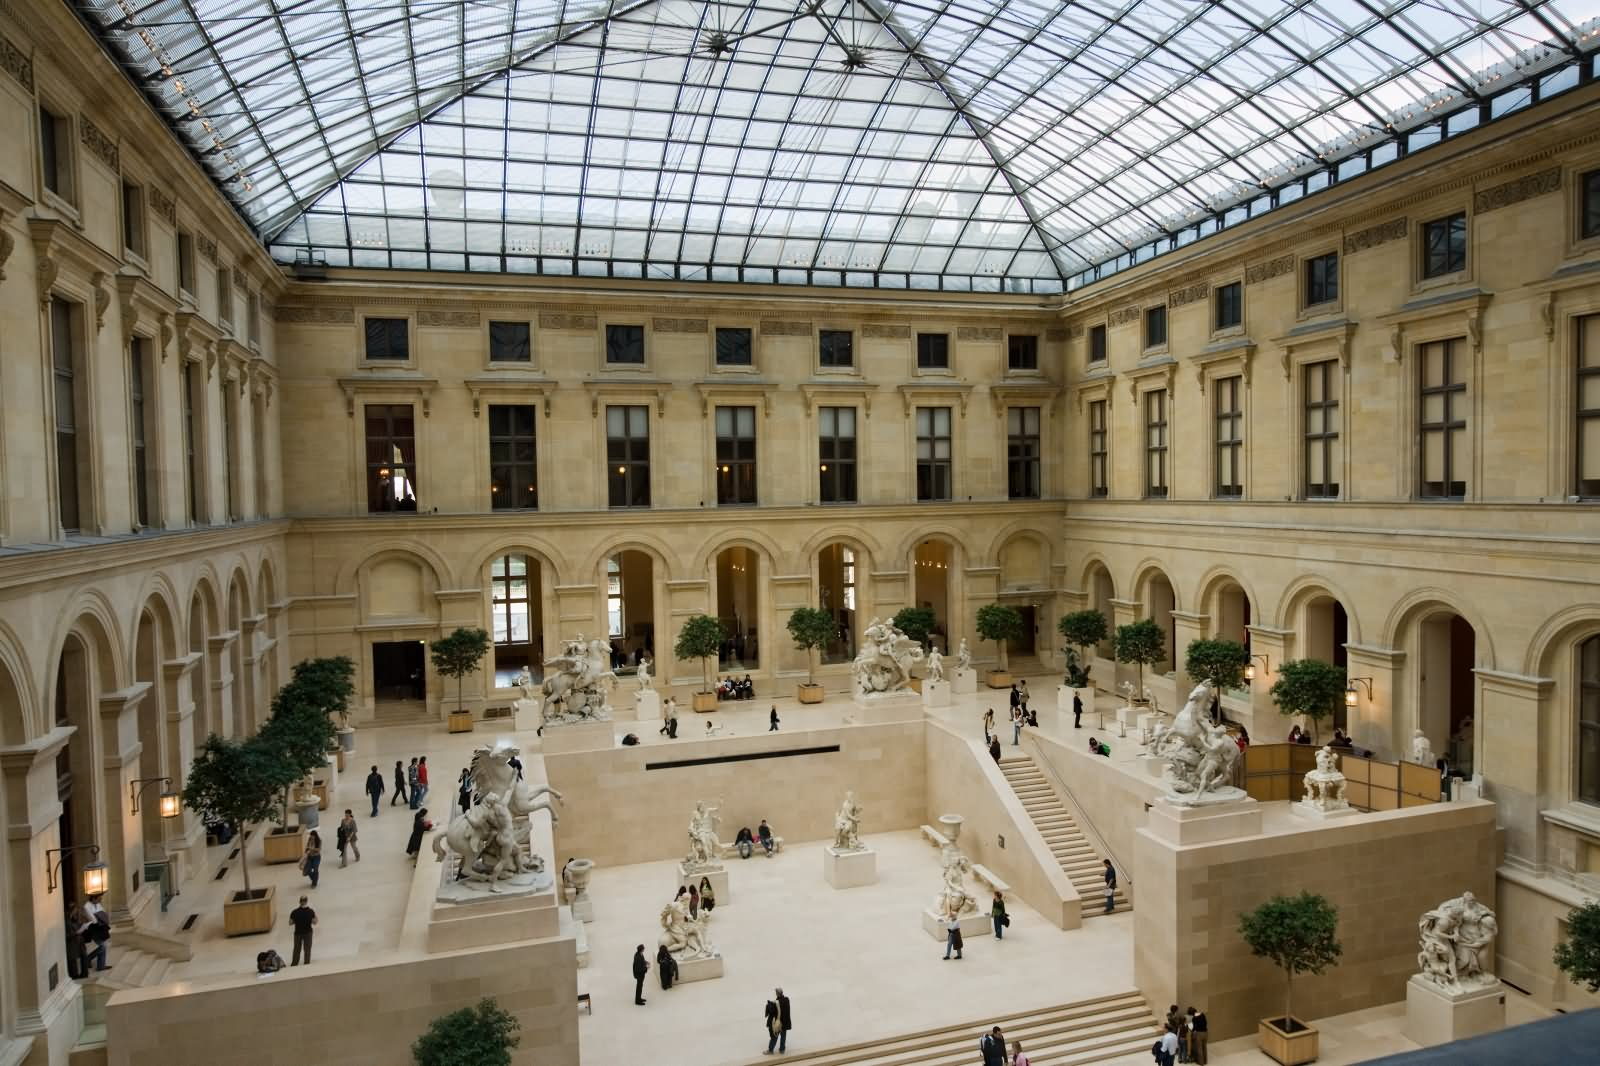 Interior Design Of The The Louvre Museum